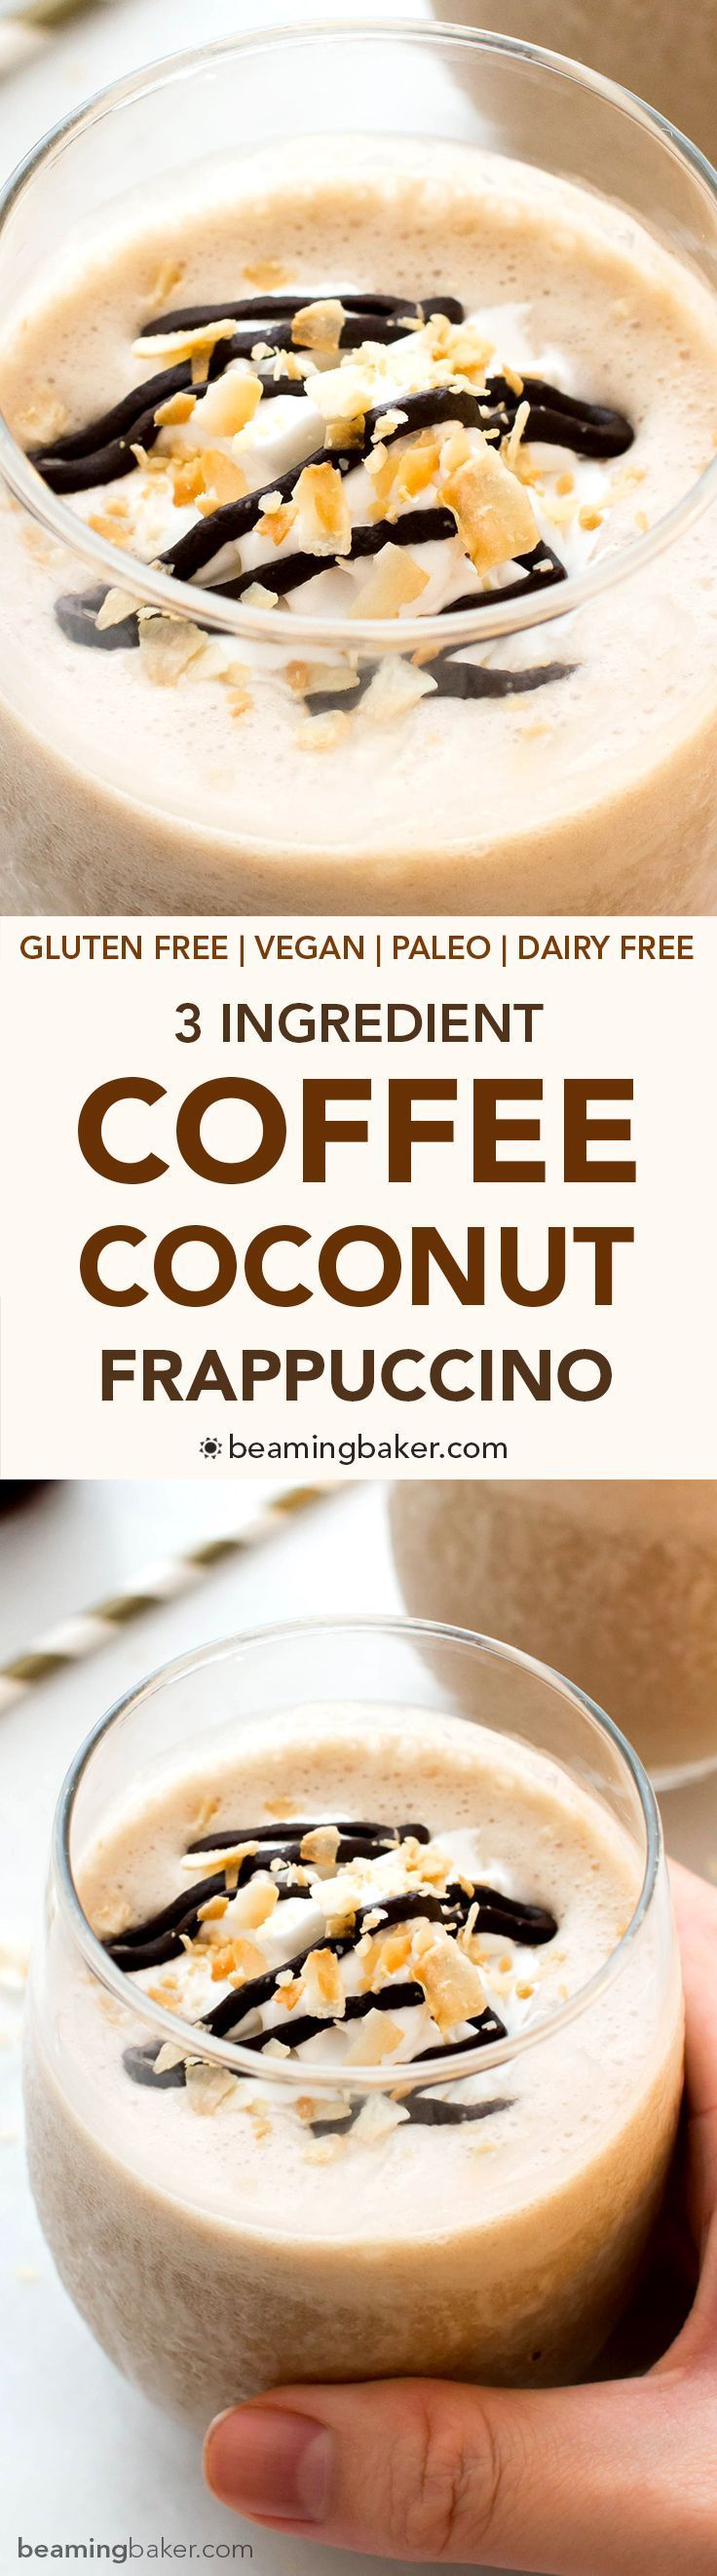 Coffee Coconut Frappuccino (V +GF): a 3 ingredient recipe for deliciously thick, creamy frappes bursting with coffee and coconut flavor. Vegan, Paleo, GF, DF.